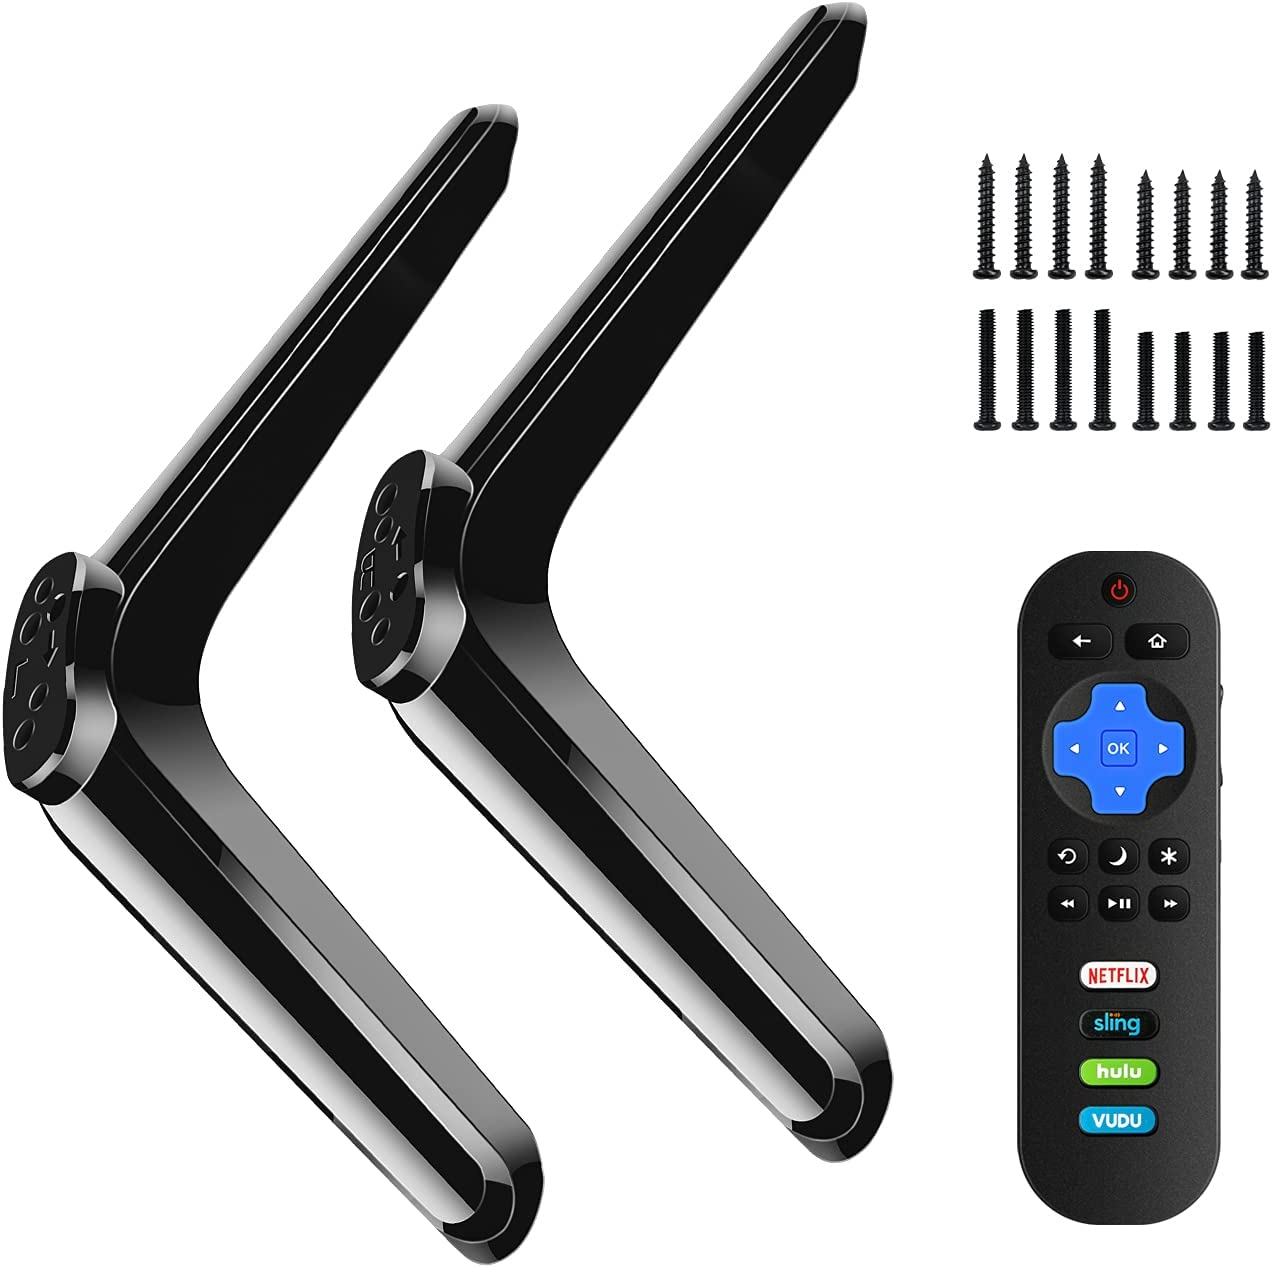 Base Stand fit for TCL Roku 32in Smart TV for 32S305 32S301 32S303 32S3800 32S4610R 32S3850 TV Stand Base and Universal Remote Control Replacement Compatible with All TCL Roku TV